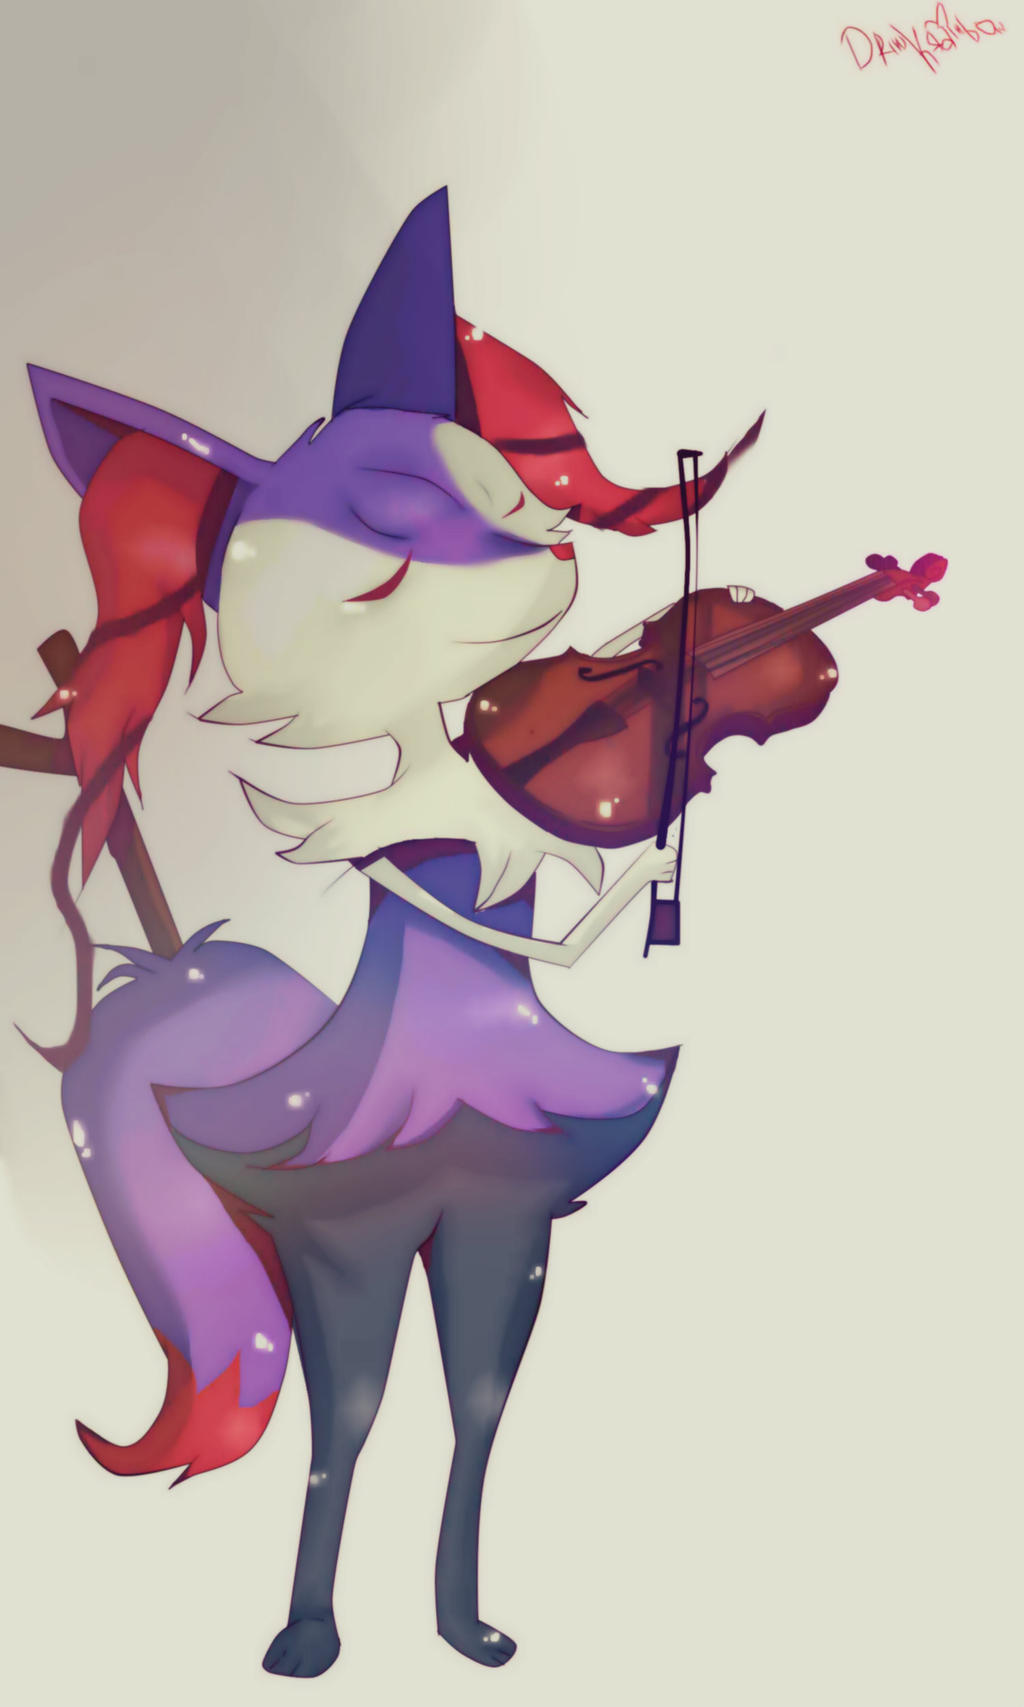 COMMISSION - Braixen Shiny / Pokemon by KikiEatRainbow on DeviantArt